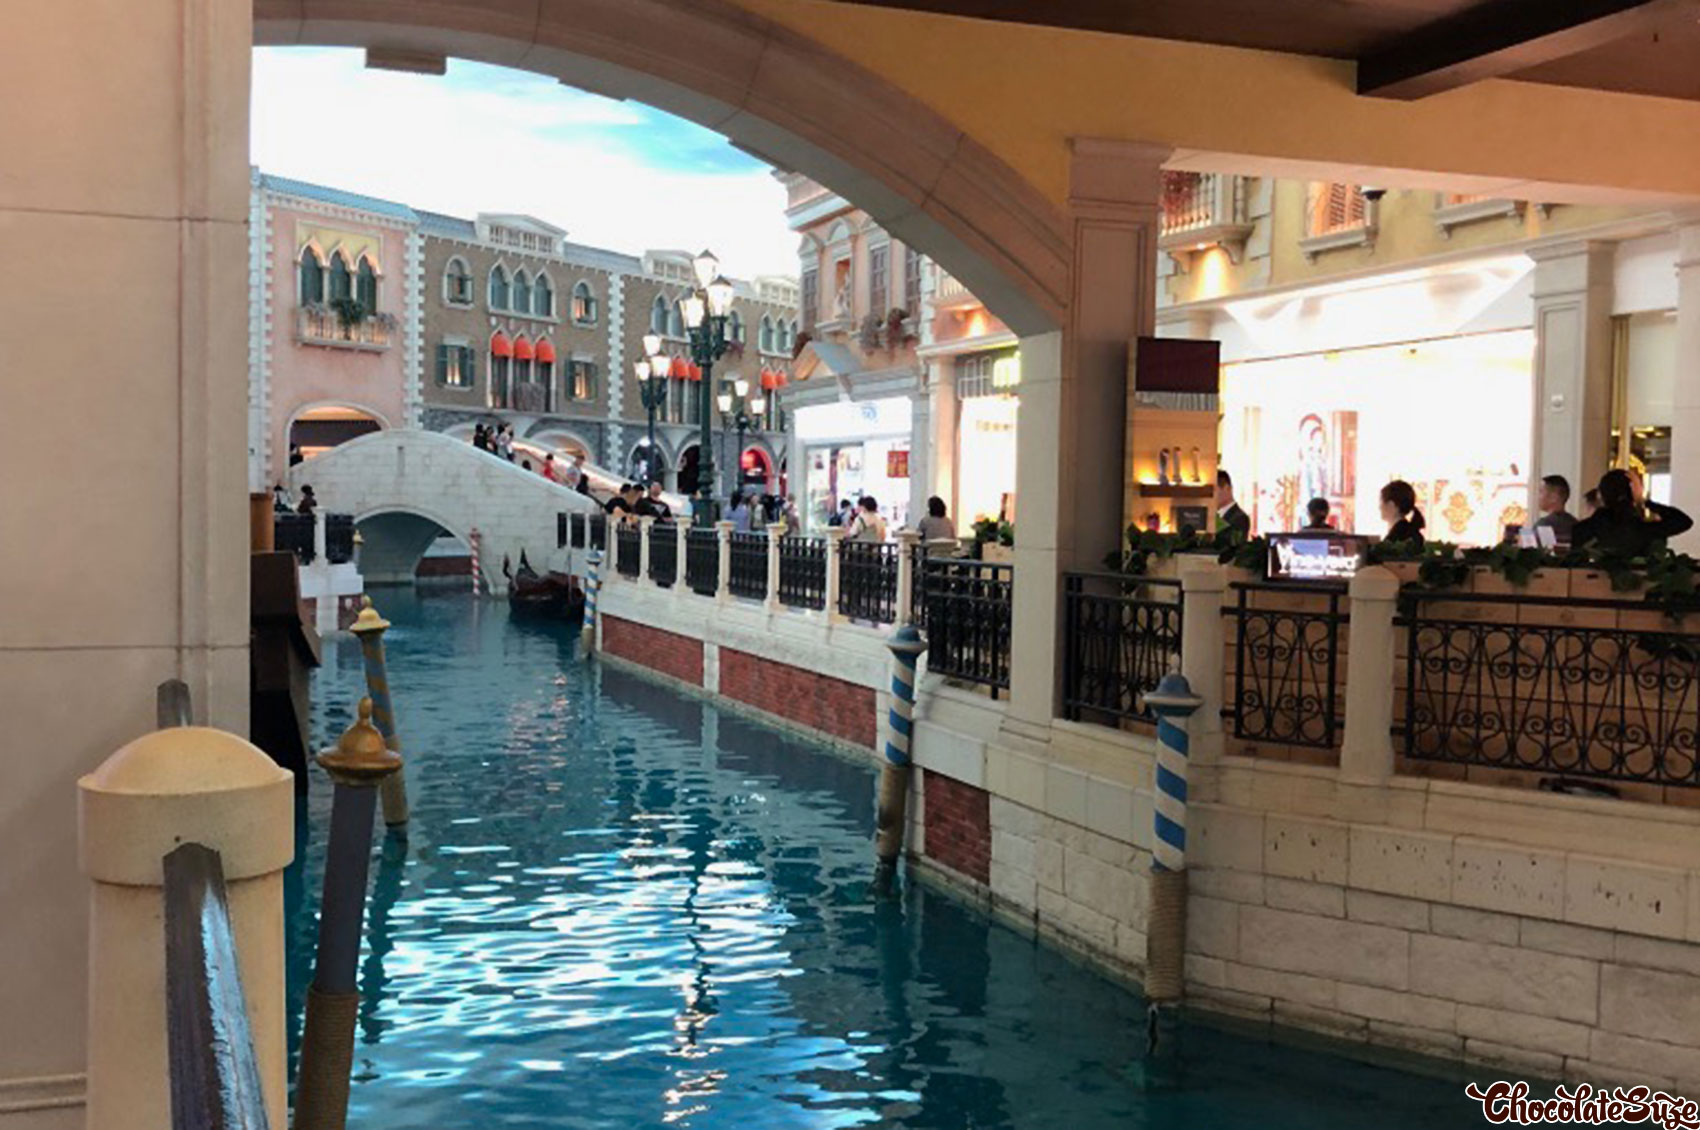 The Venetian, Macao